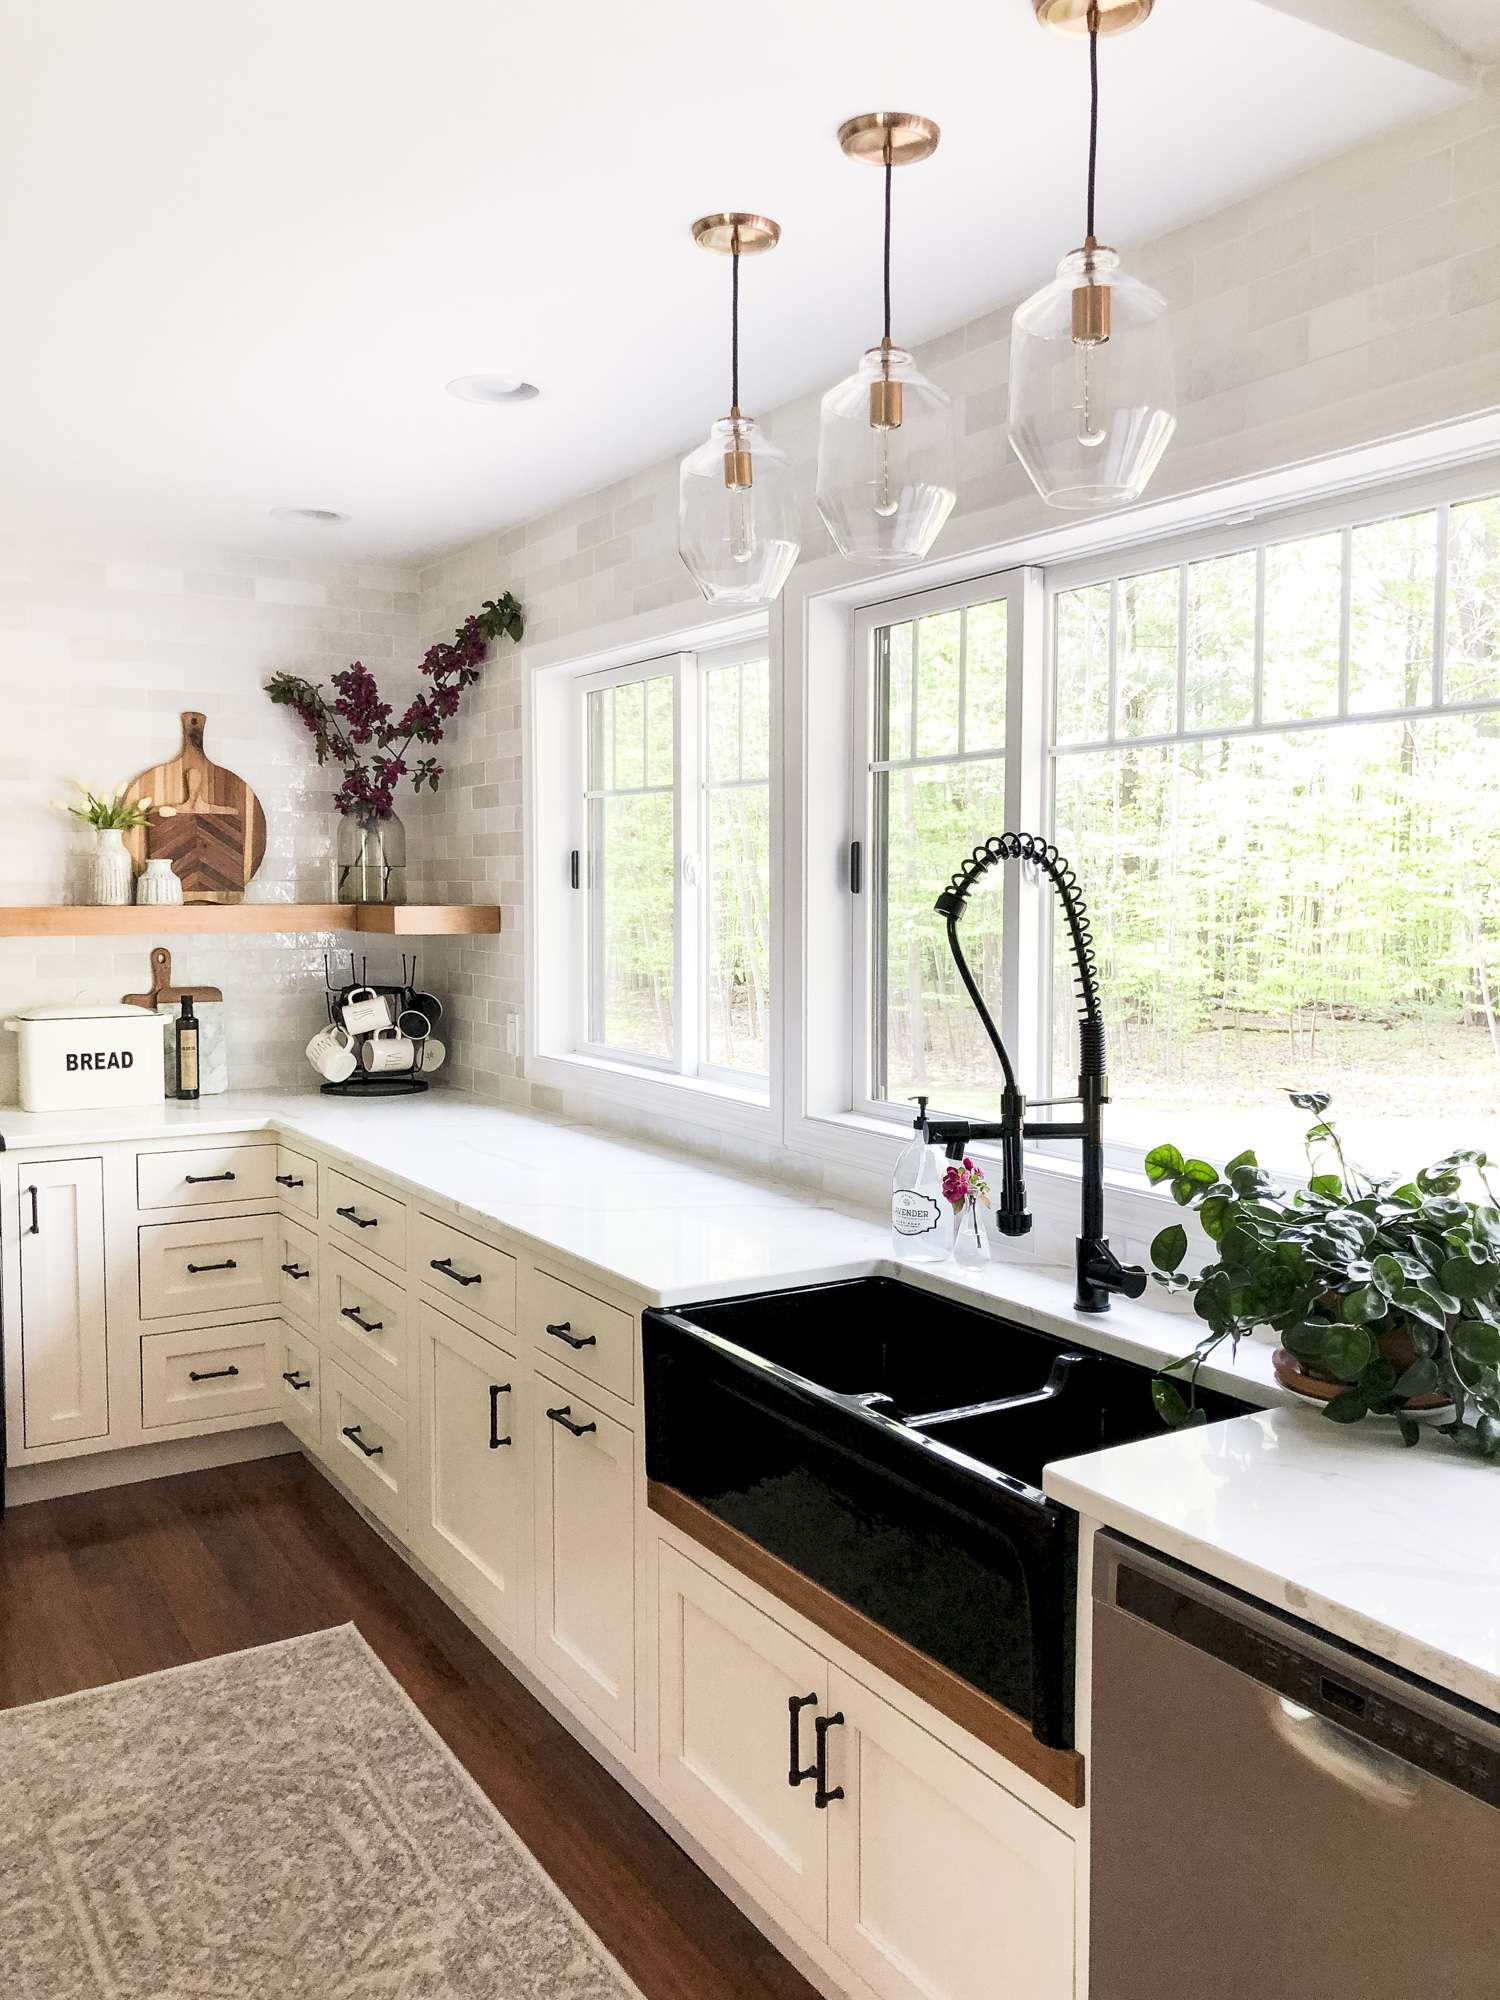 Do you love modern farmhouse style? Here are tips for how to use a black sink to anchor your kitchen remodel design. Plus, how to mix finishes! #fromhousetohaven #blackfarmhousesink #farmhousesink